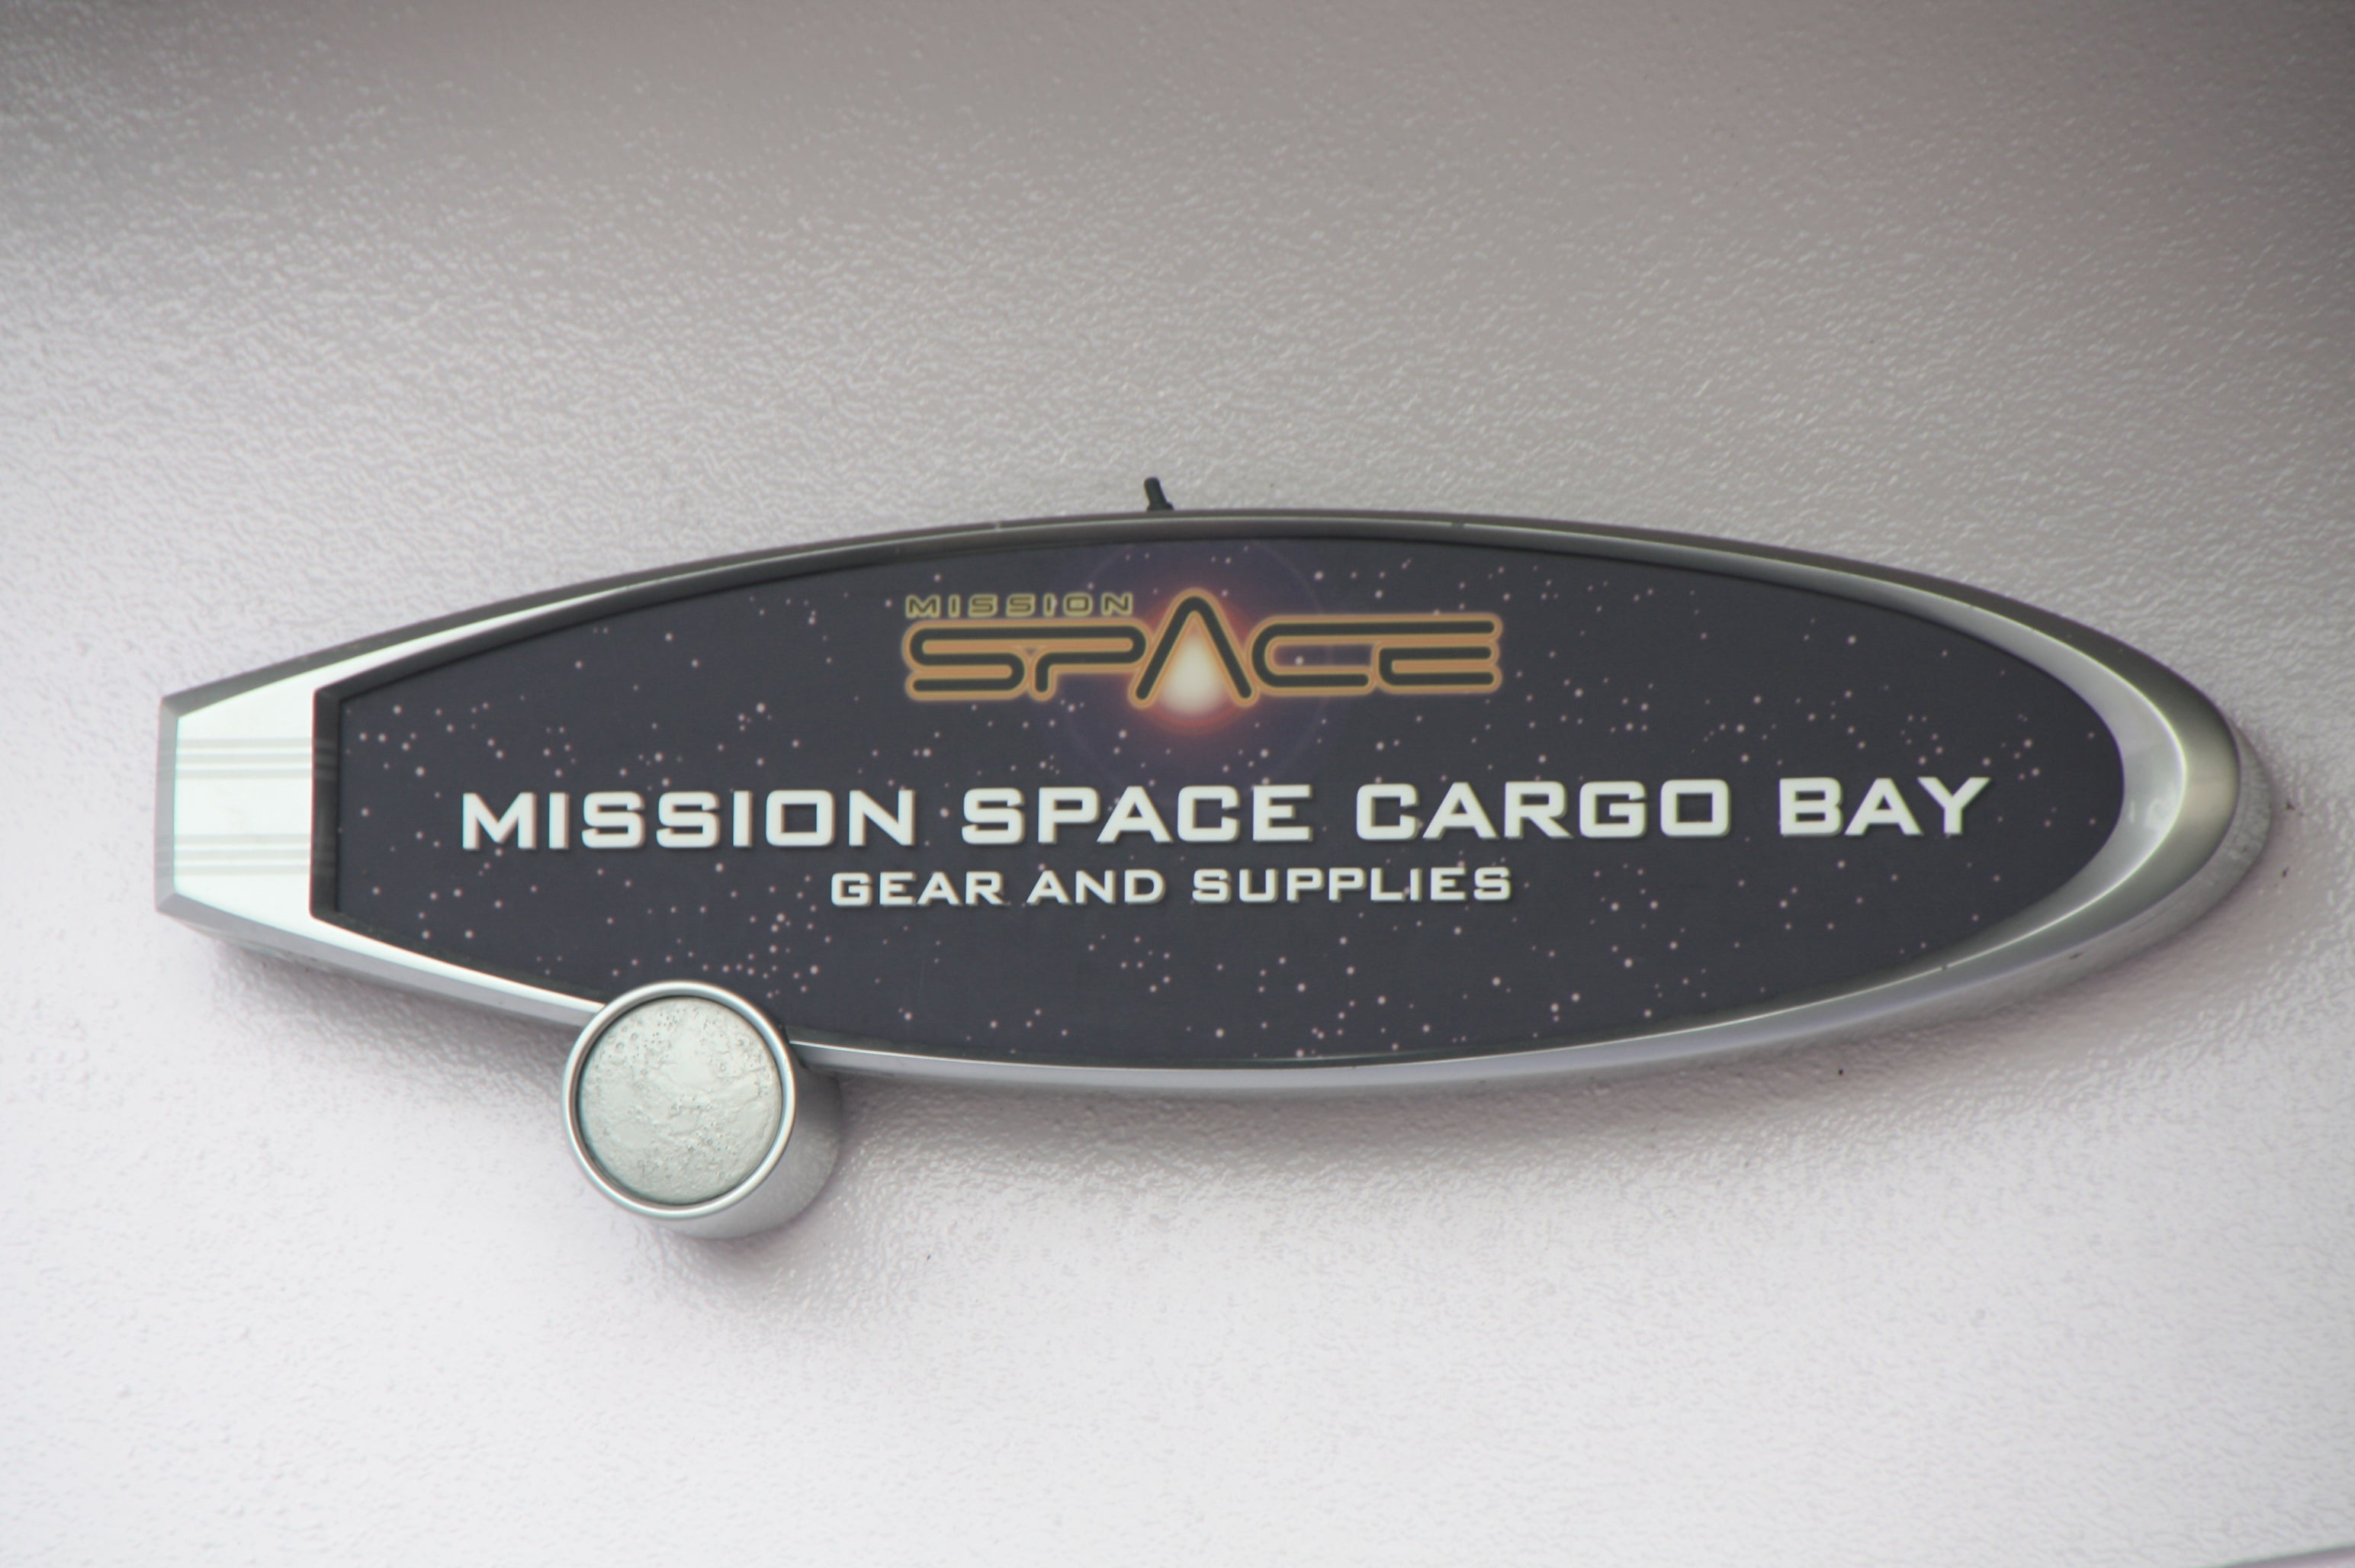 Mission Space (EPCOT)